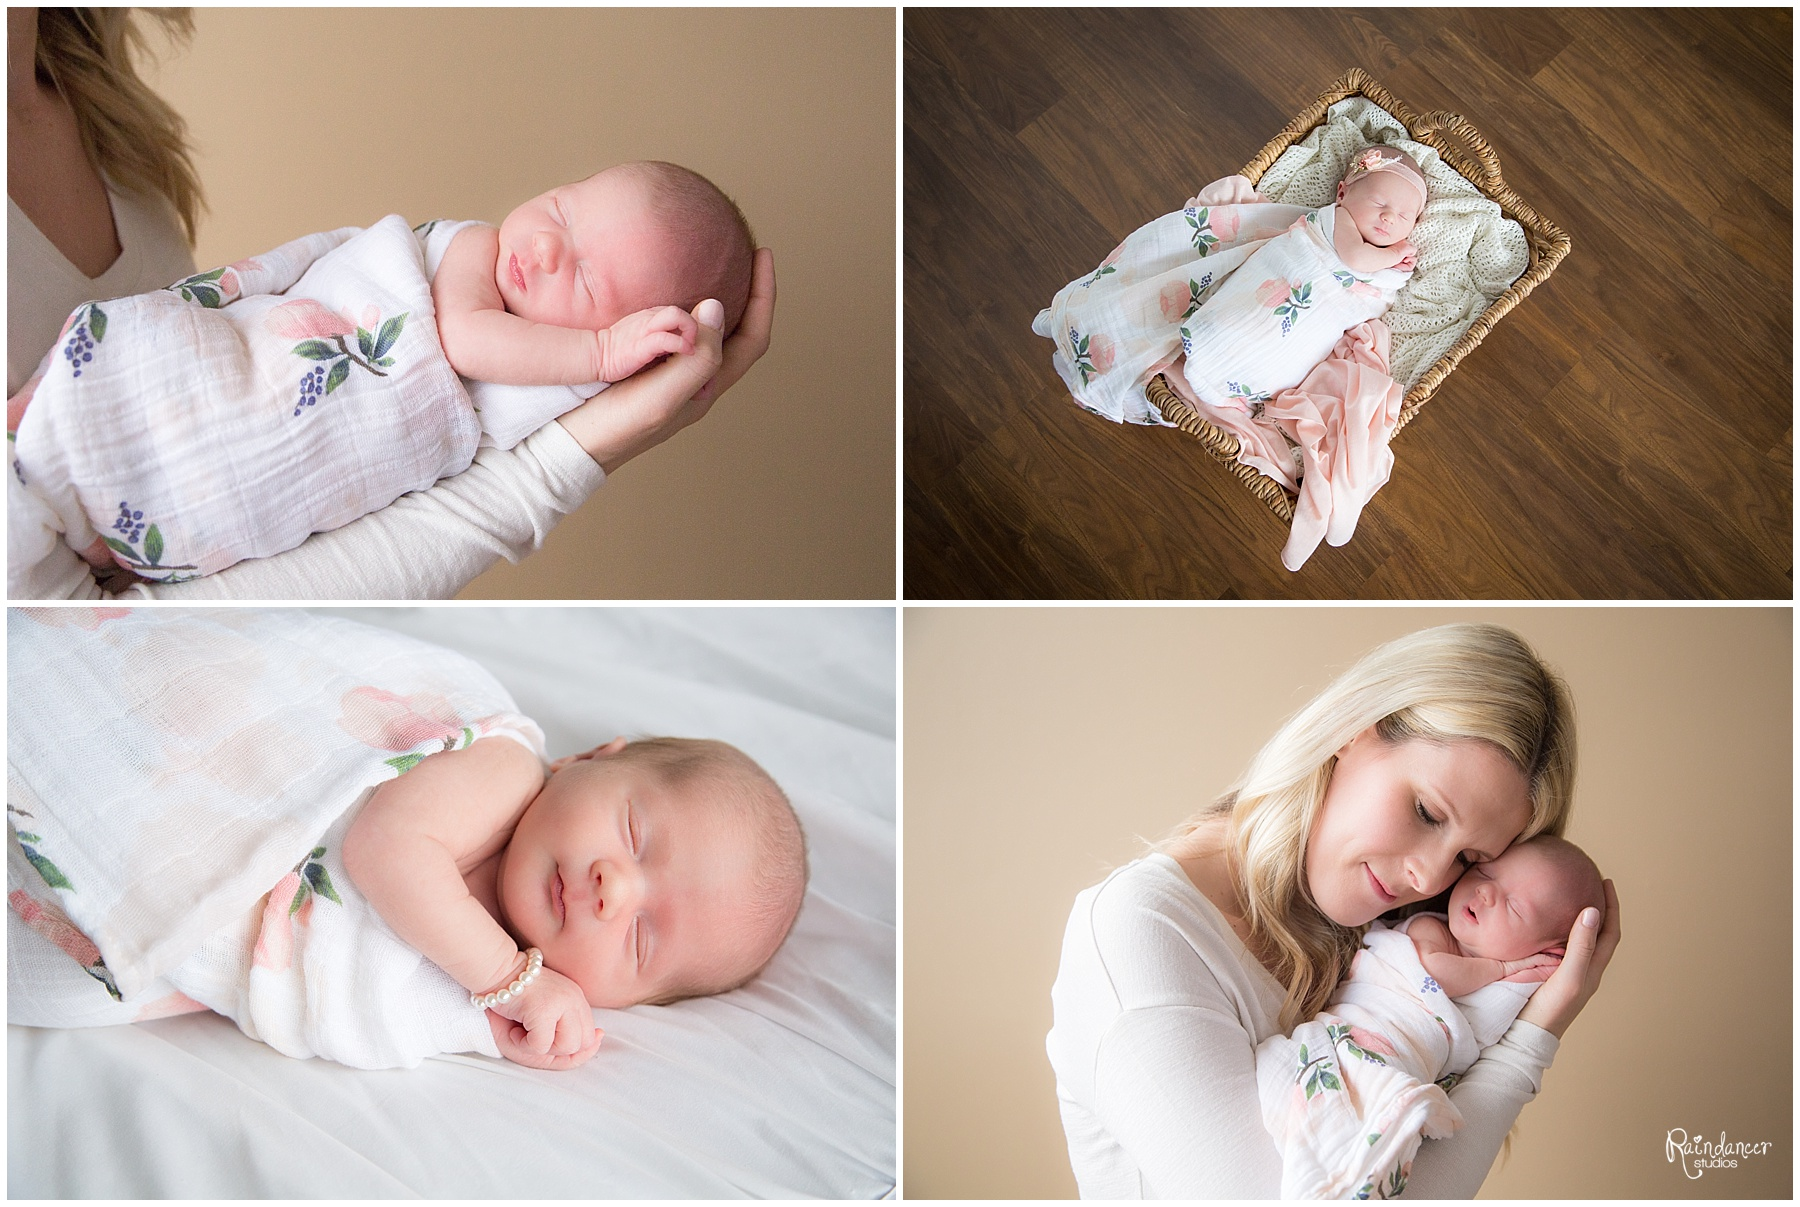 Indianapolis Newborn Photographer, Indy newborn photographer, Indy newborn photography, Indianapolis newborn photography, Indy baby photographer, Indianapolis baby photographer Indianapolis family photographer, Indianapolis family photography, Indy family photographer, Indy family photography, Indy children photographer, Indianapolis children photographer, Indianapolis lifestyle photographer